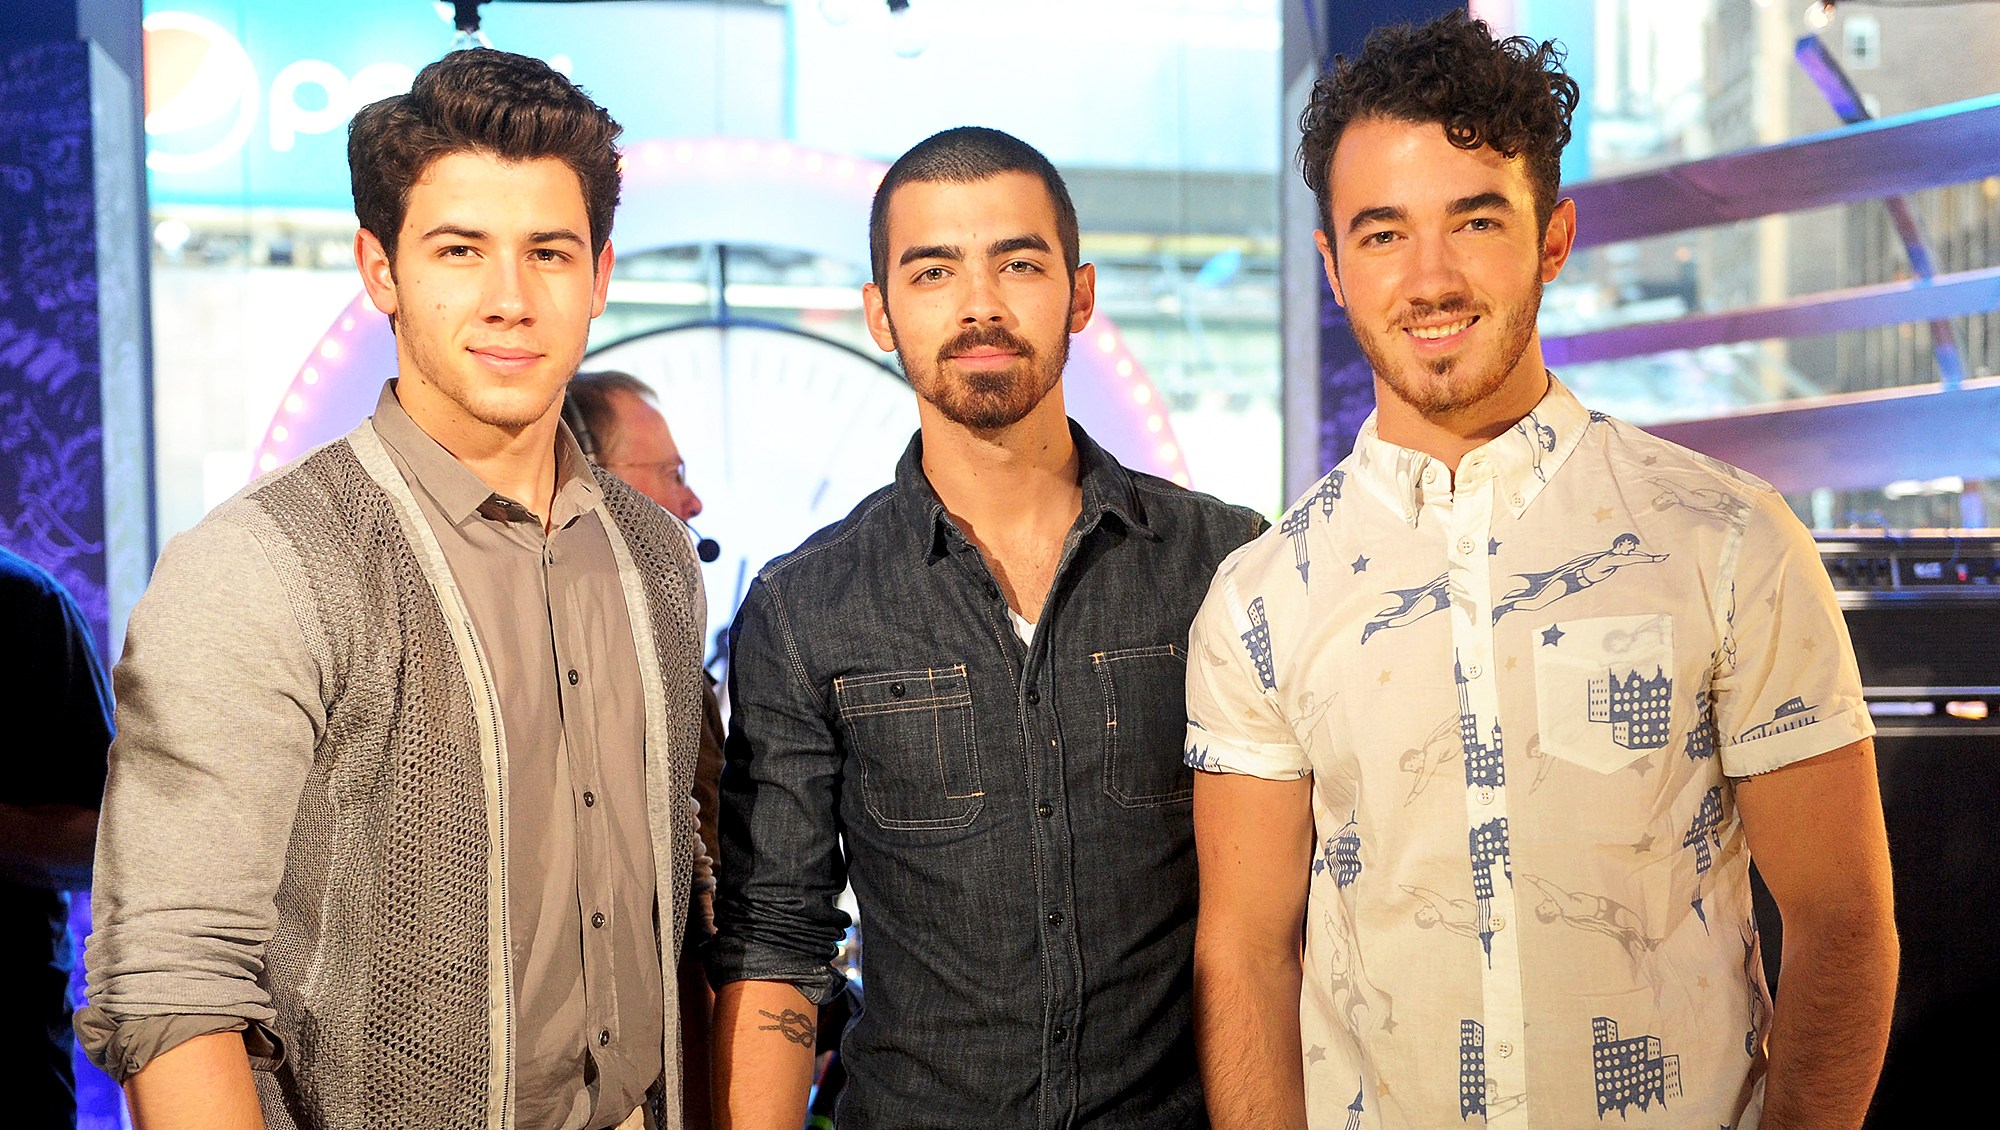 Nick Jonas, Joe Jonas and Kevin Jonas perform during the MTV, VH1, CMT & LOGO 2013 O Music Awards in New York City.